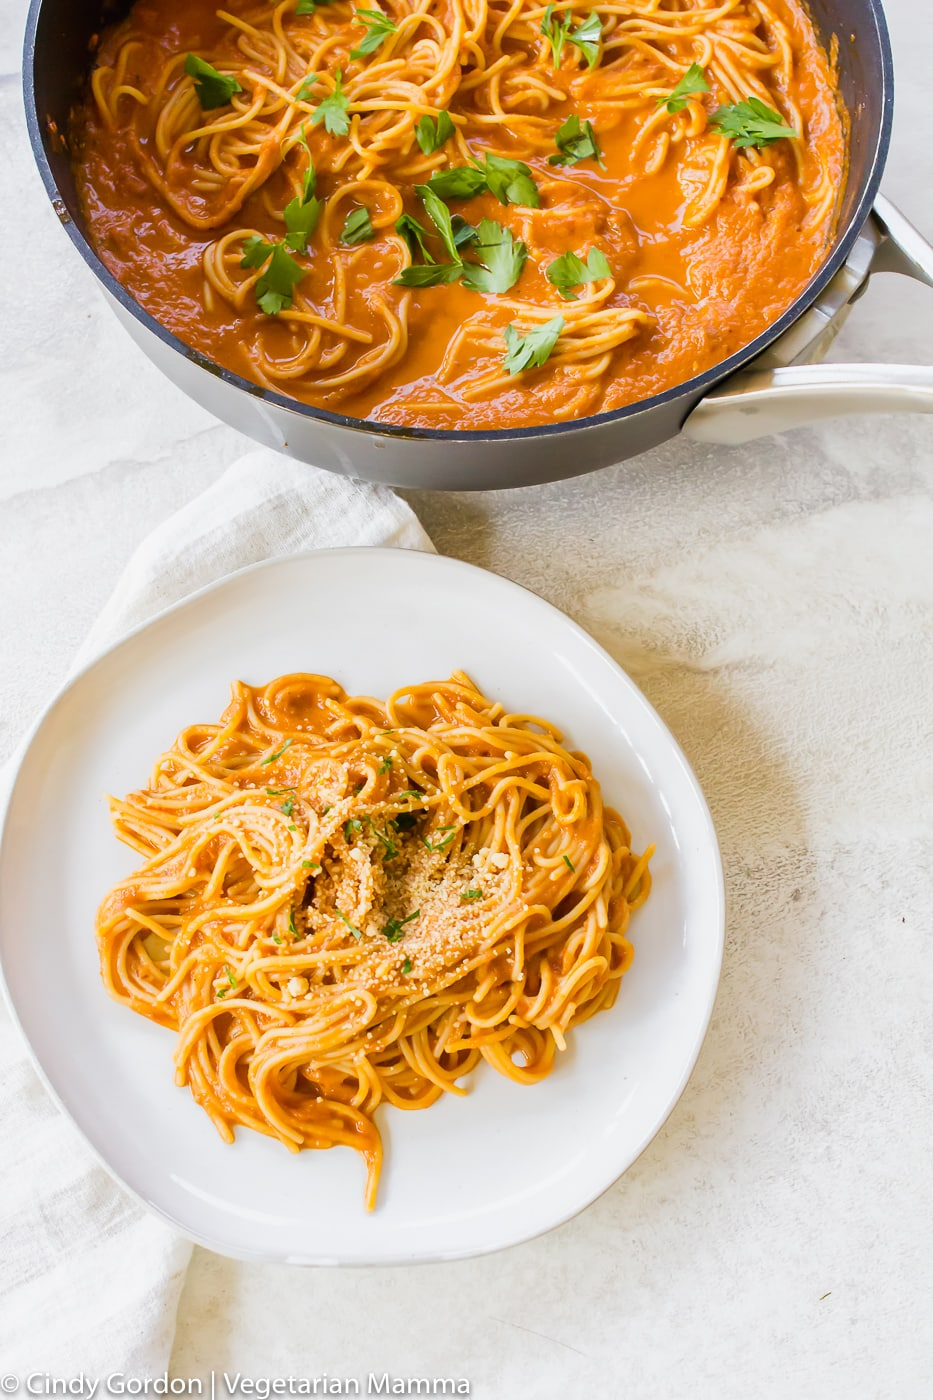 Vegetarian Spaghetti Sauce served on a white plate aside the skillet full of pasta and sauce